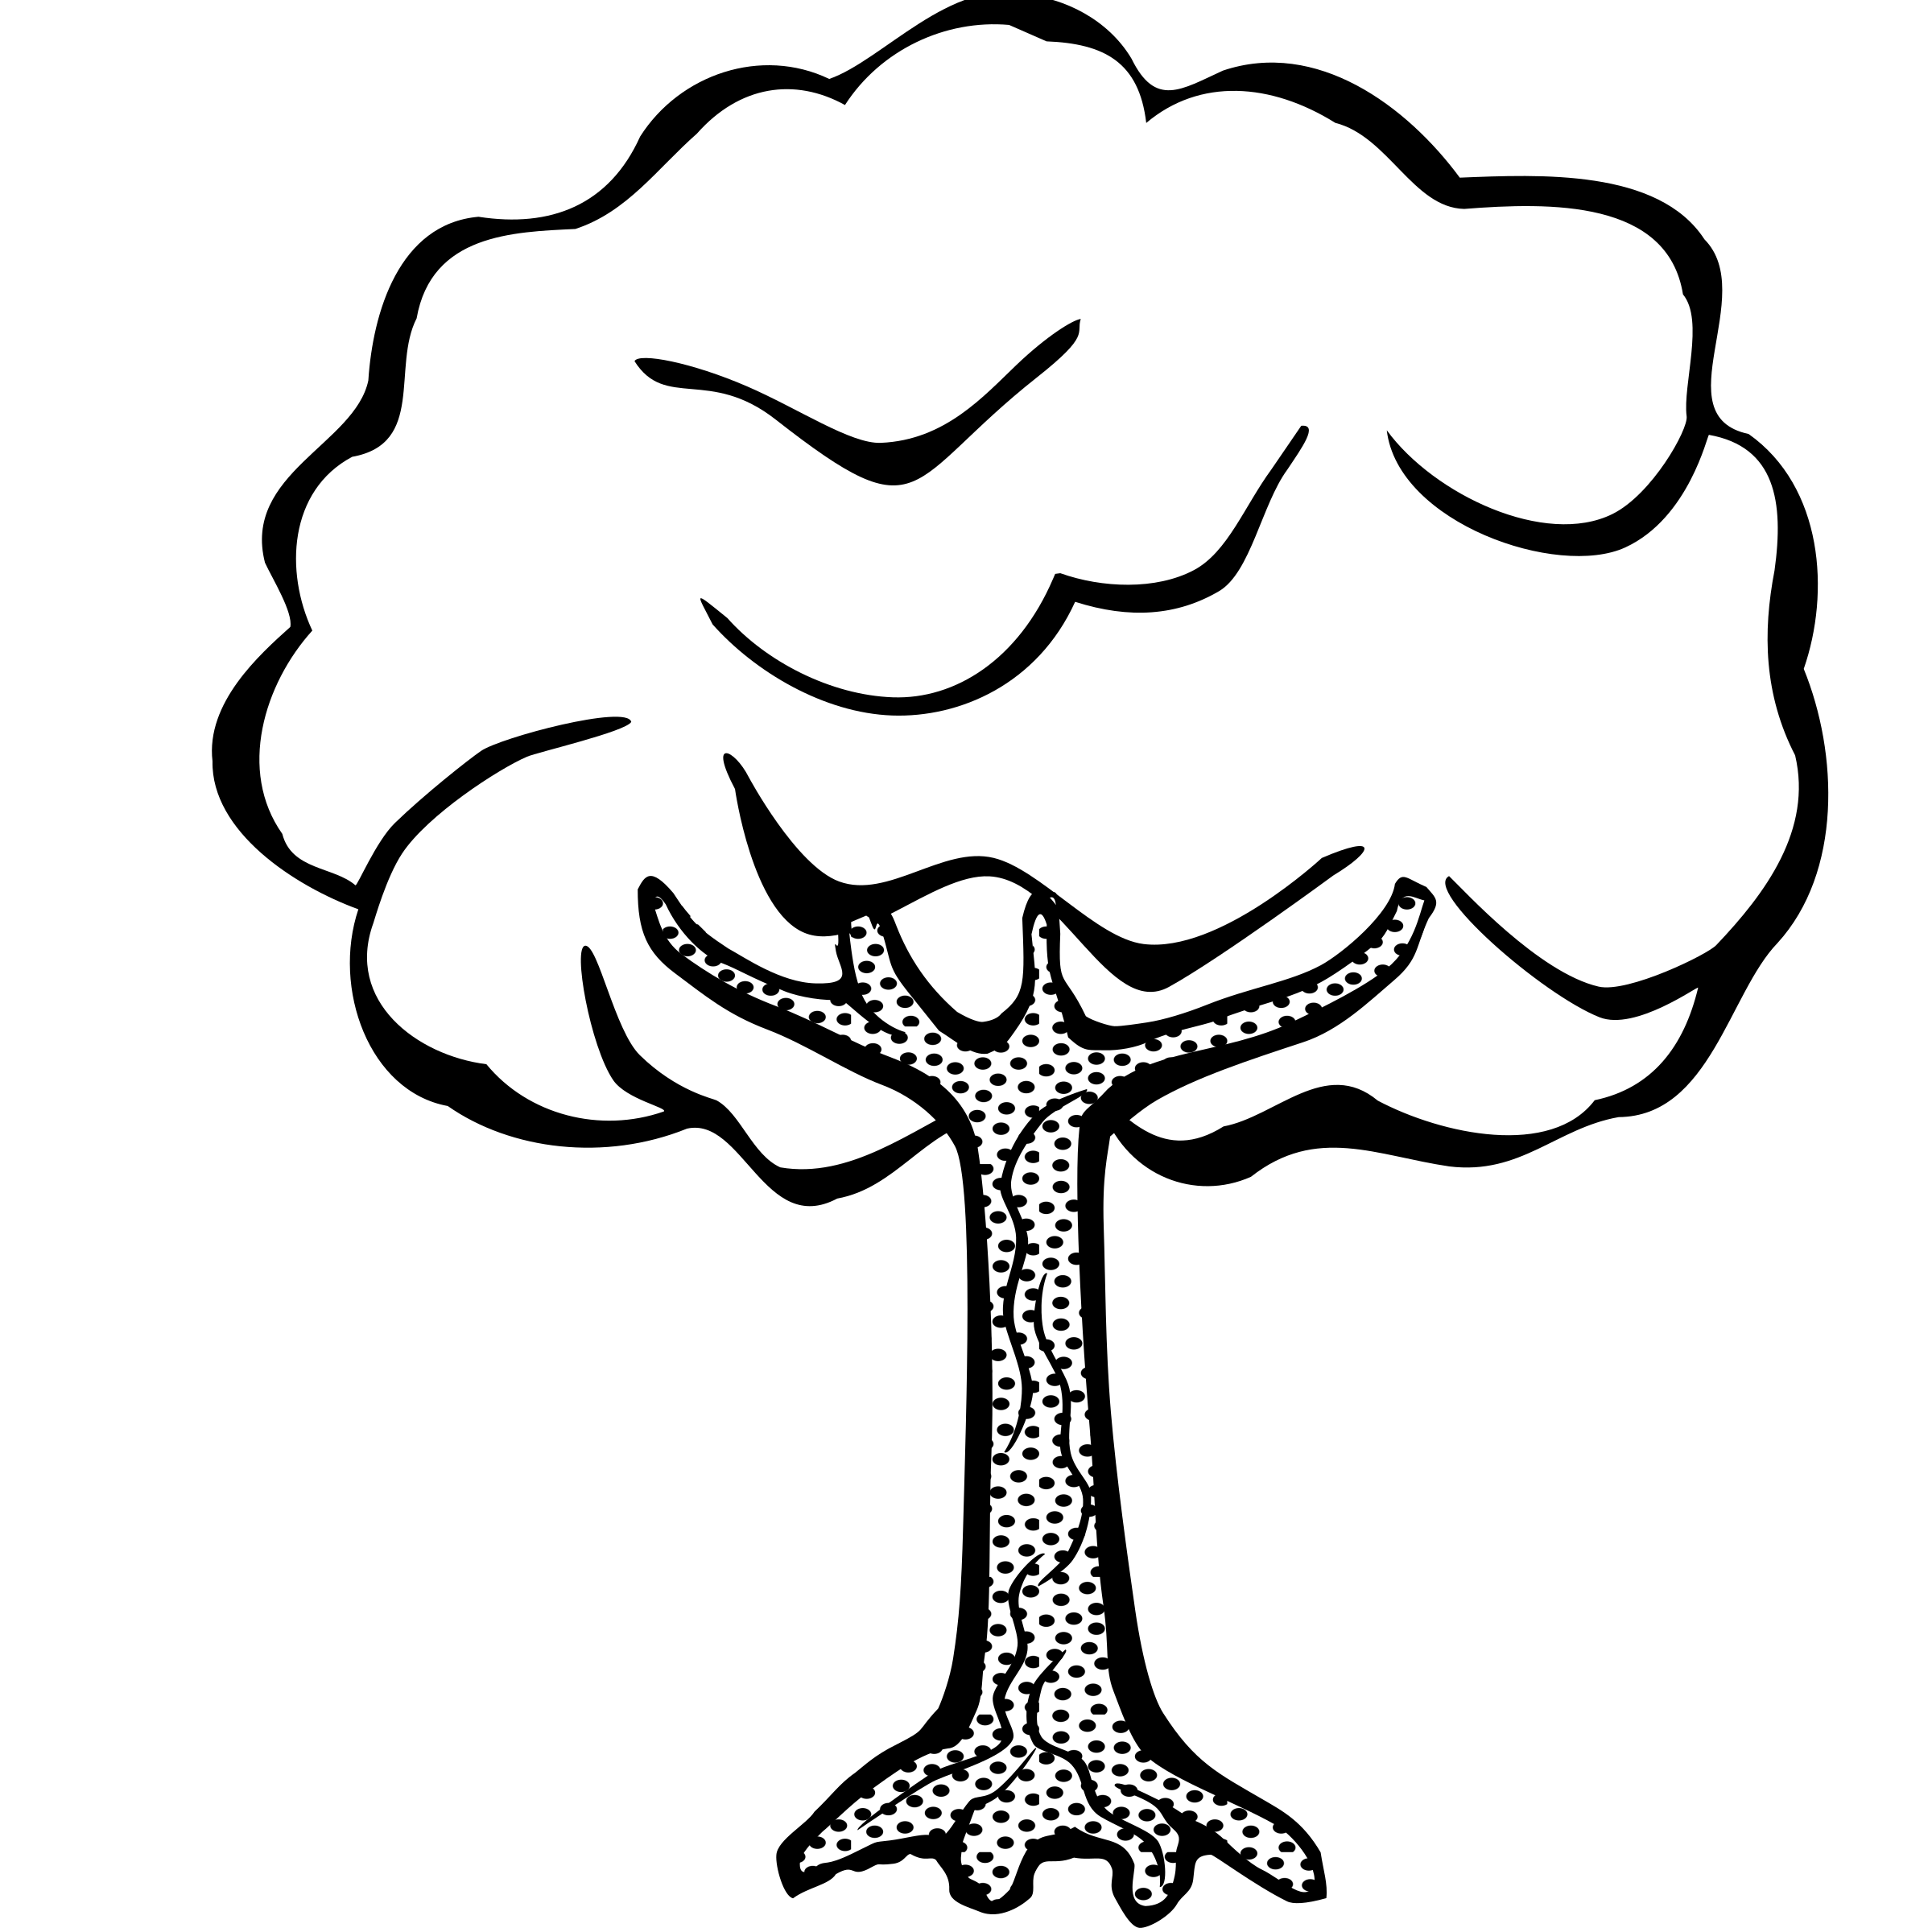 Download High Quality clipart tree black and white.